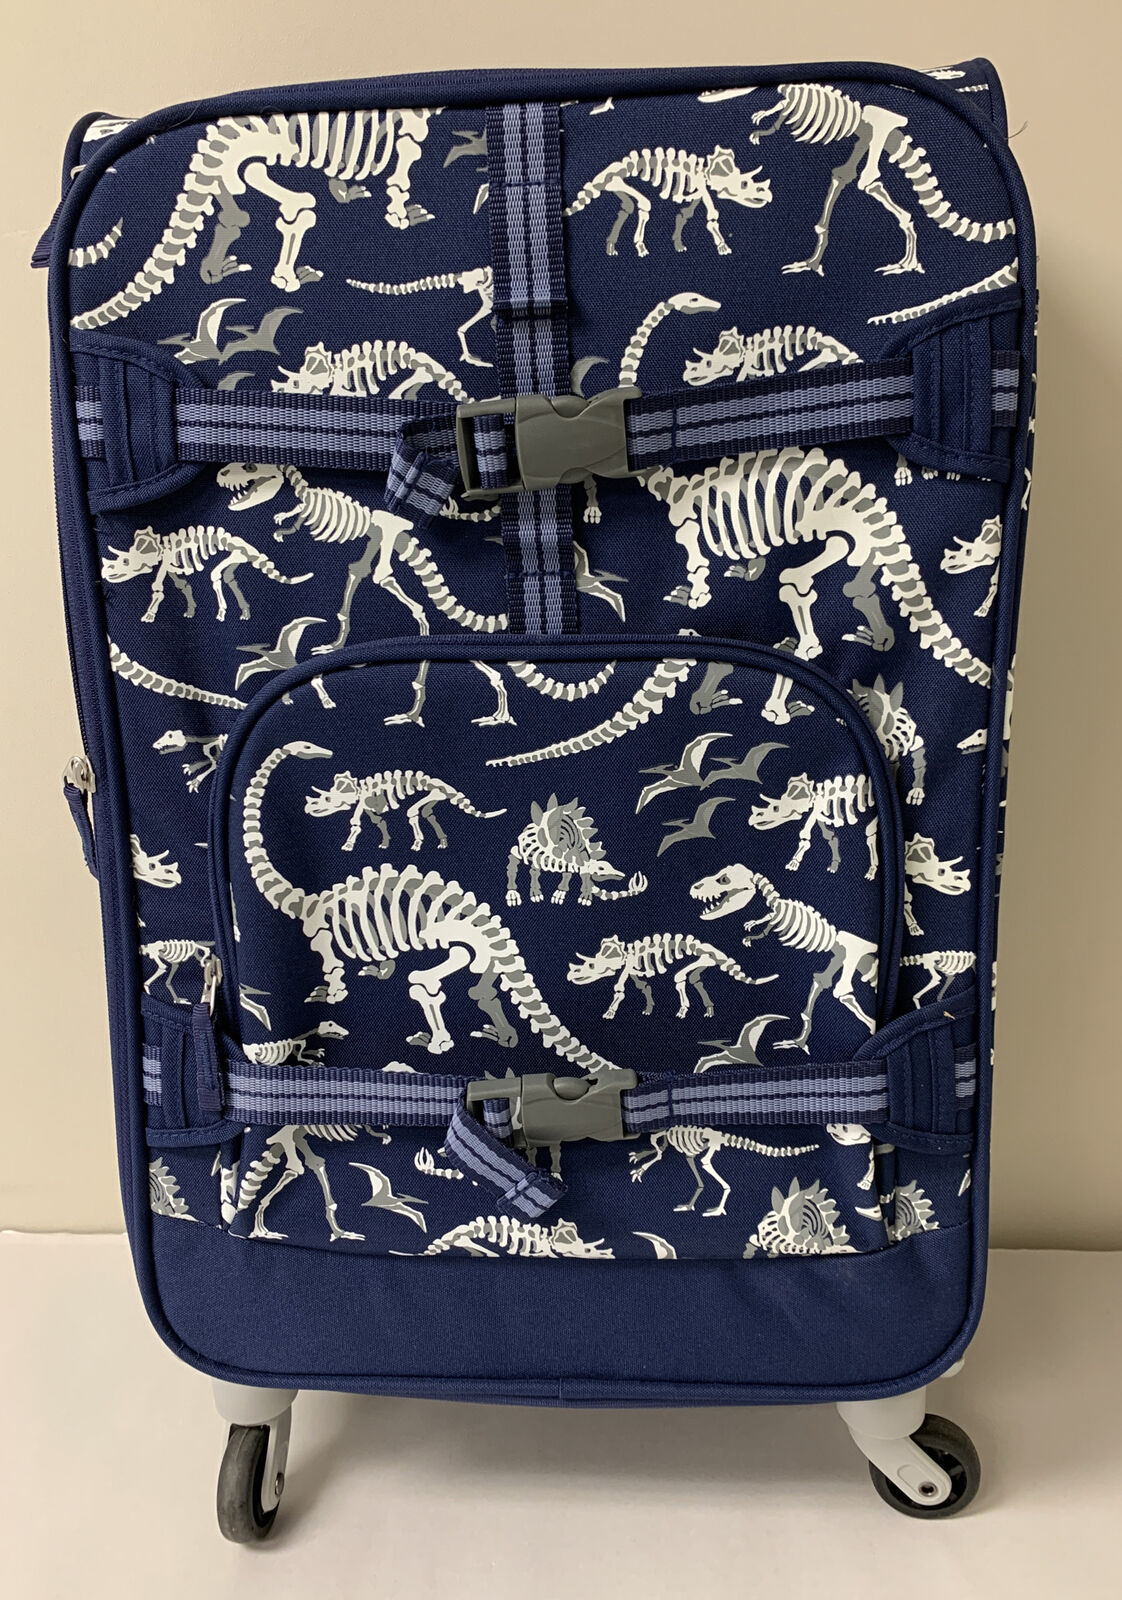 Pottery Barn Kids Mackenzie Large Rolling Spinner Luggage Dinosaurs New (A TO)